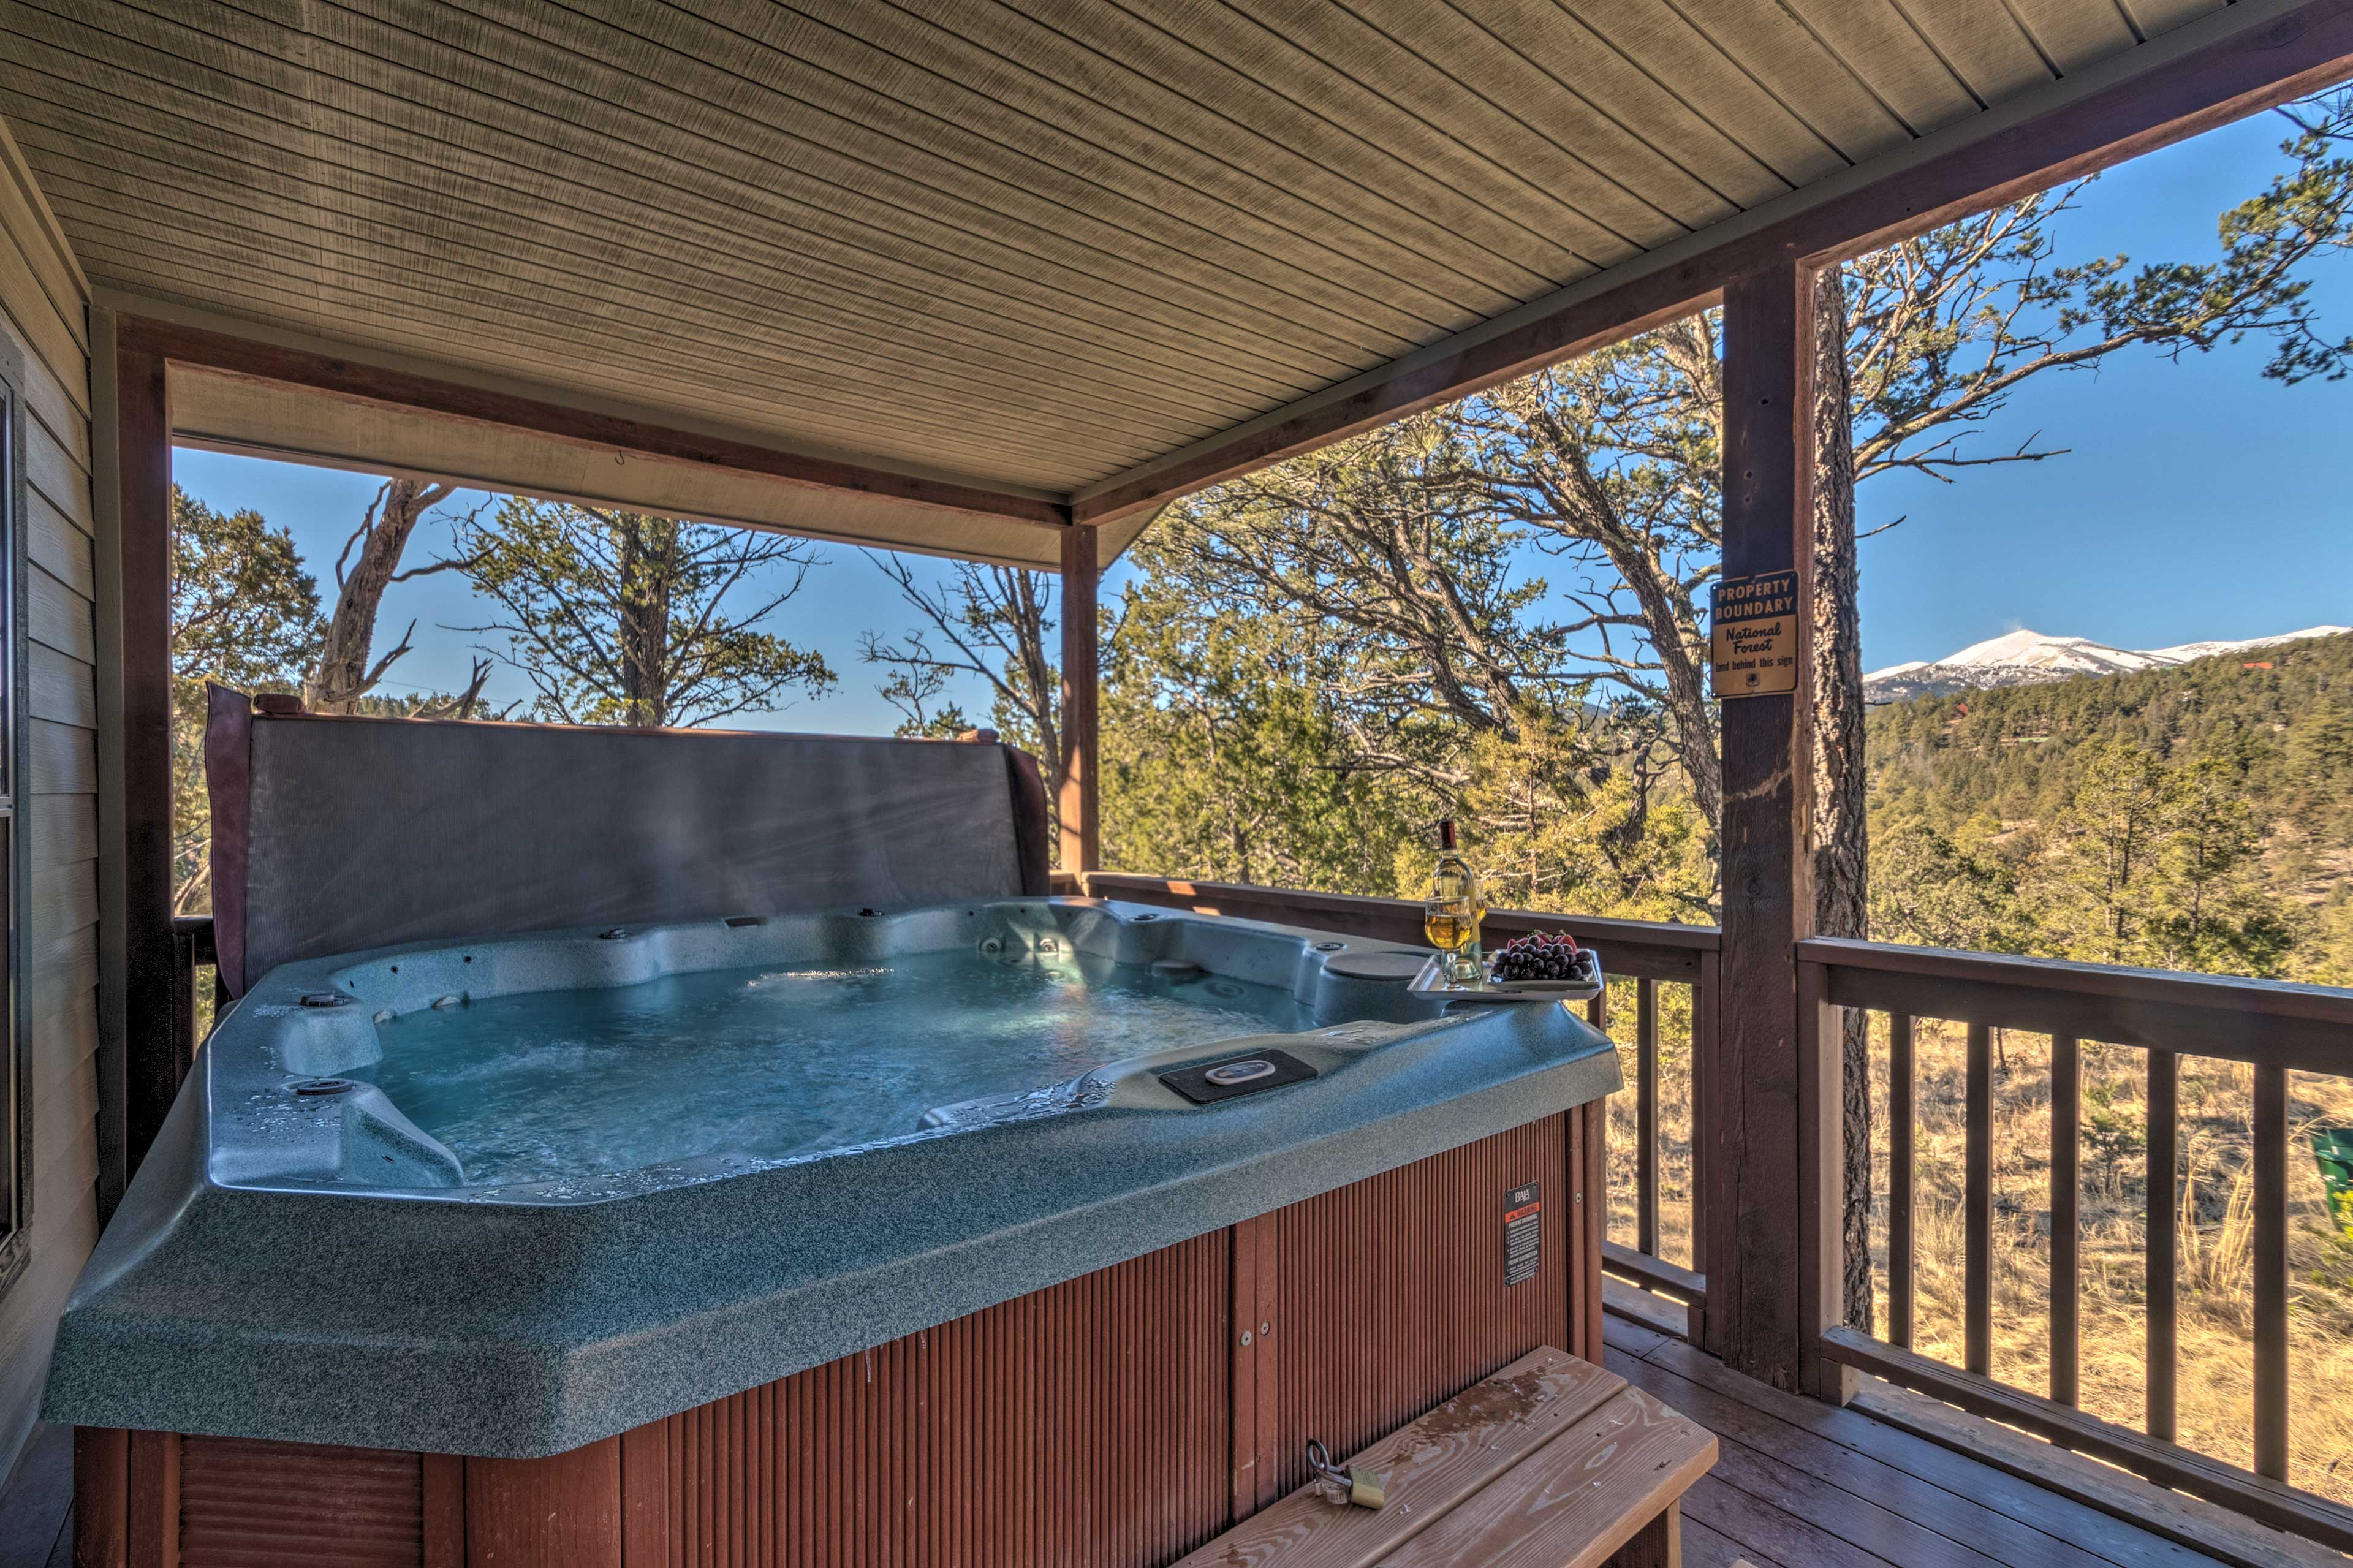 Soak up the fresh mountain air from the private hot tub with mountain views!